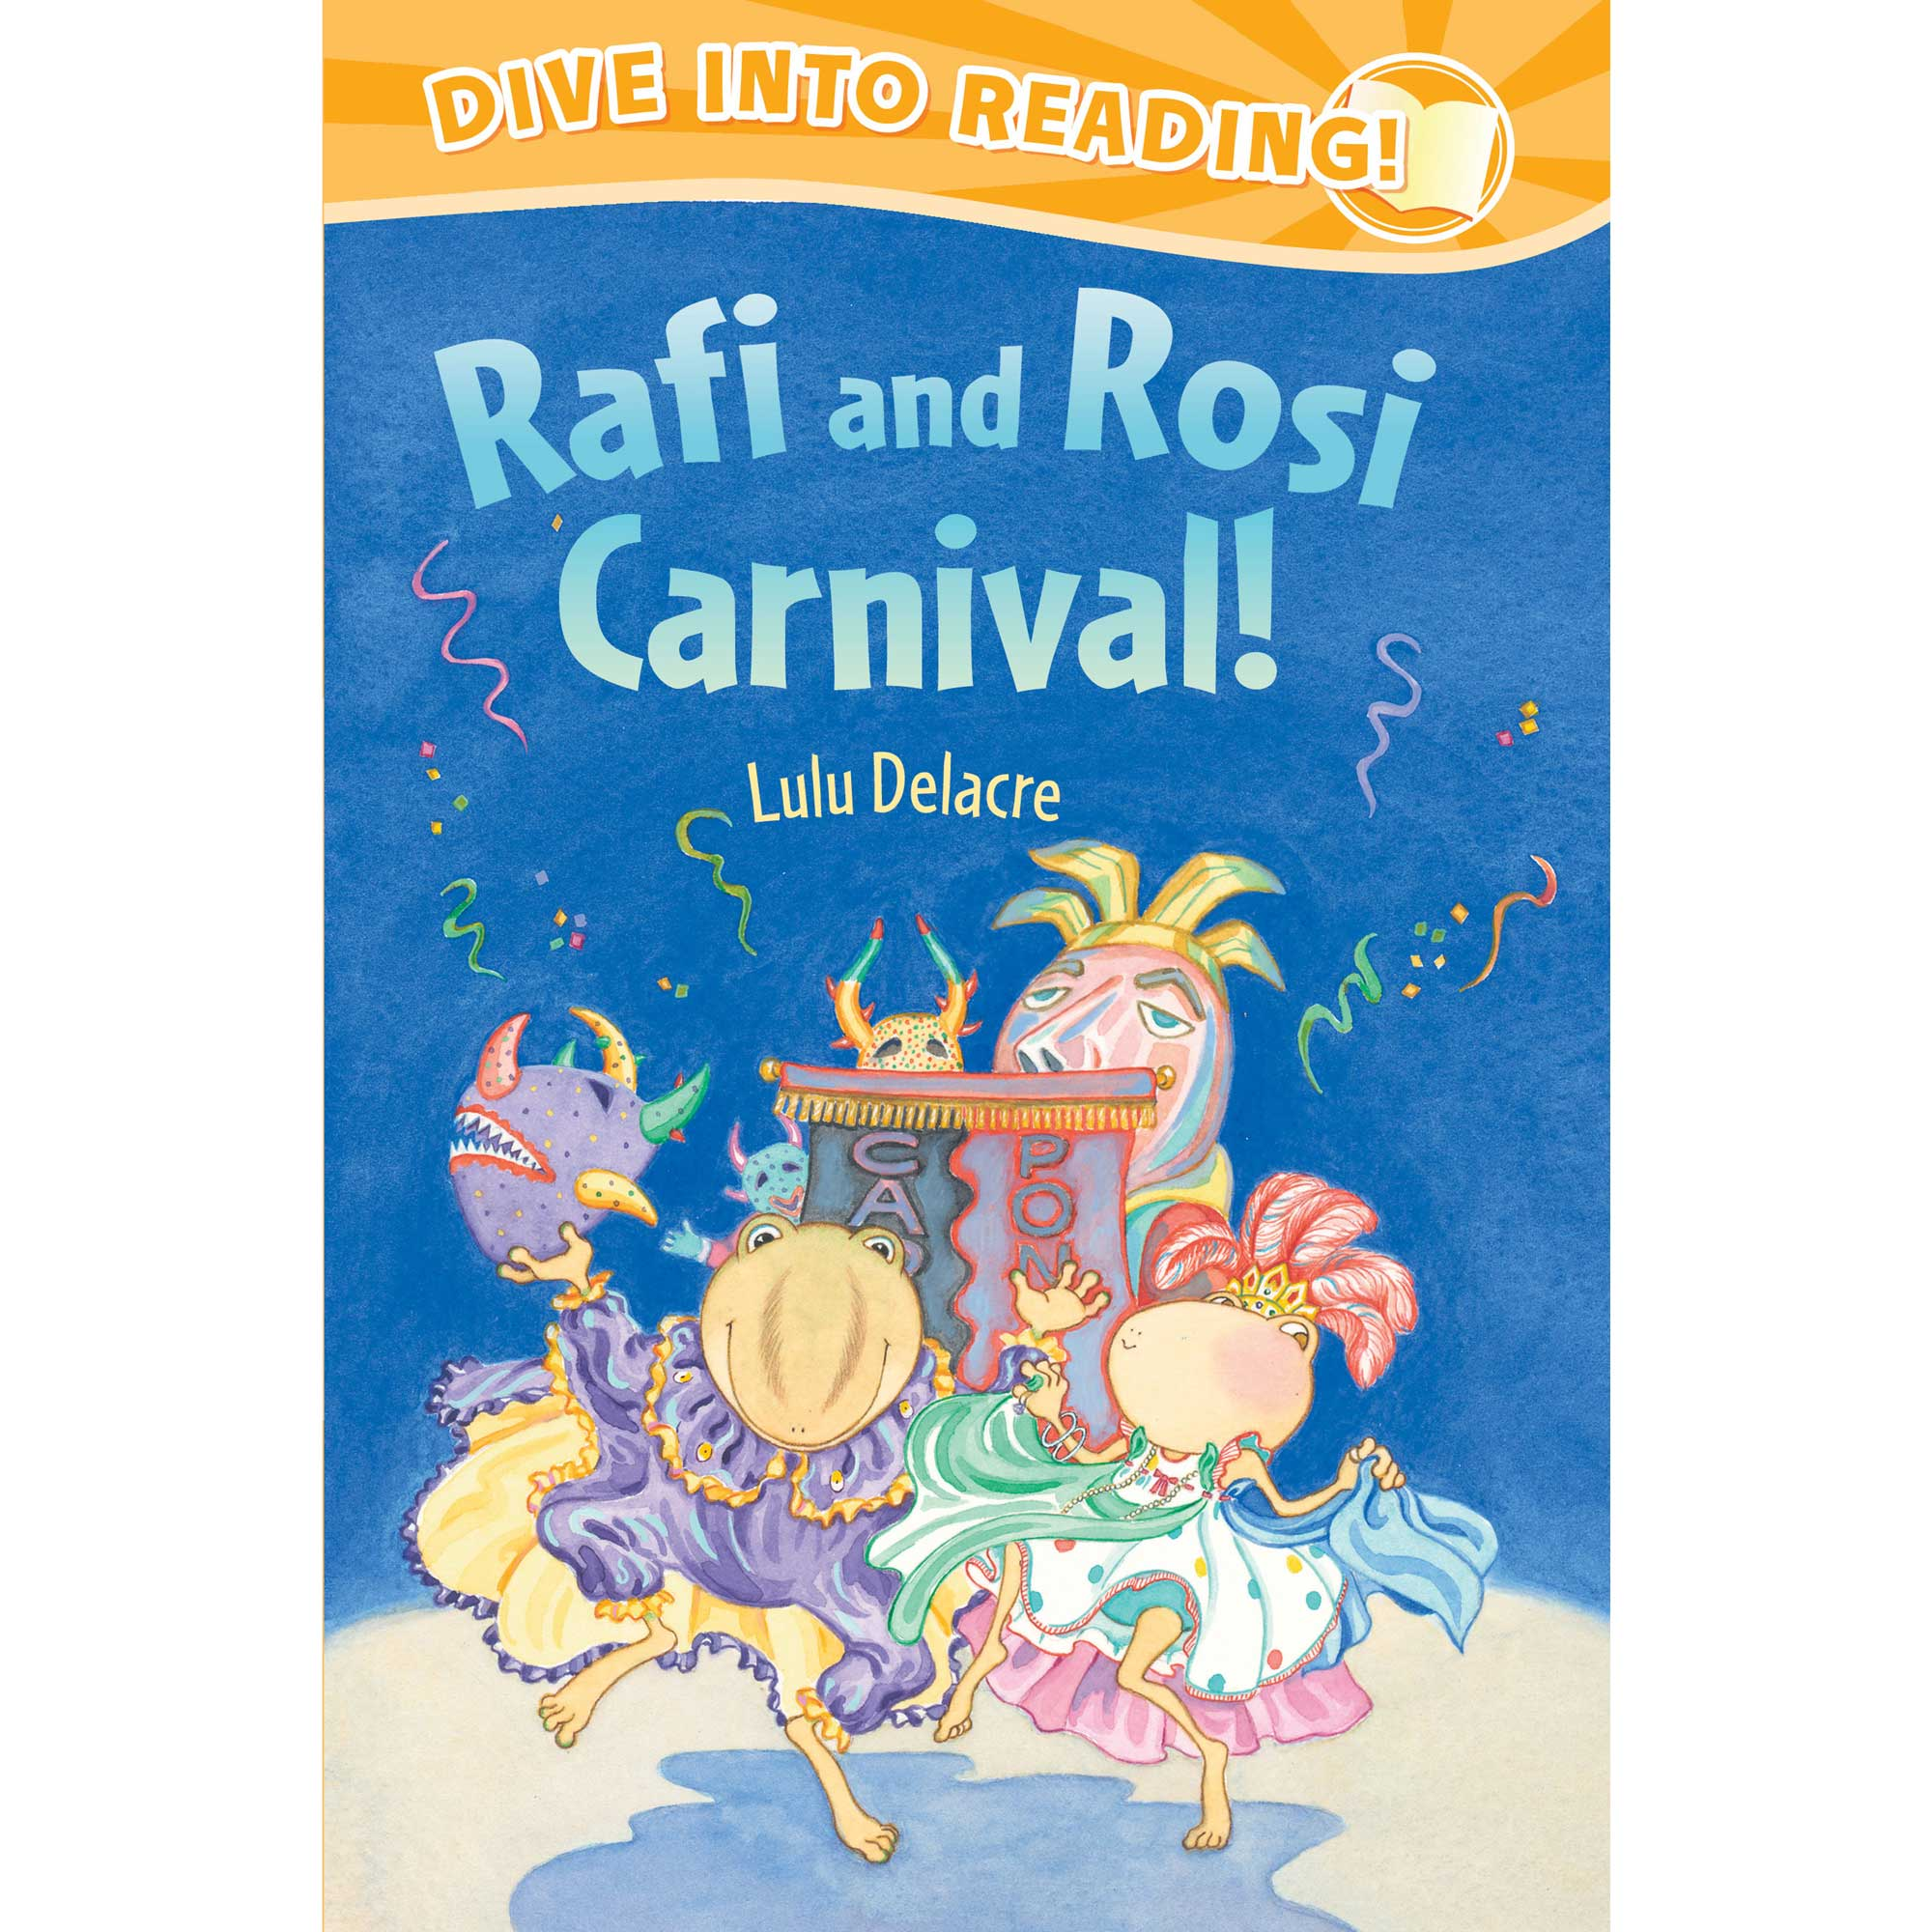 rafi and rosie carnival childrens book by lulu delacre